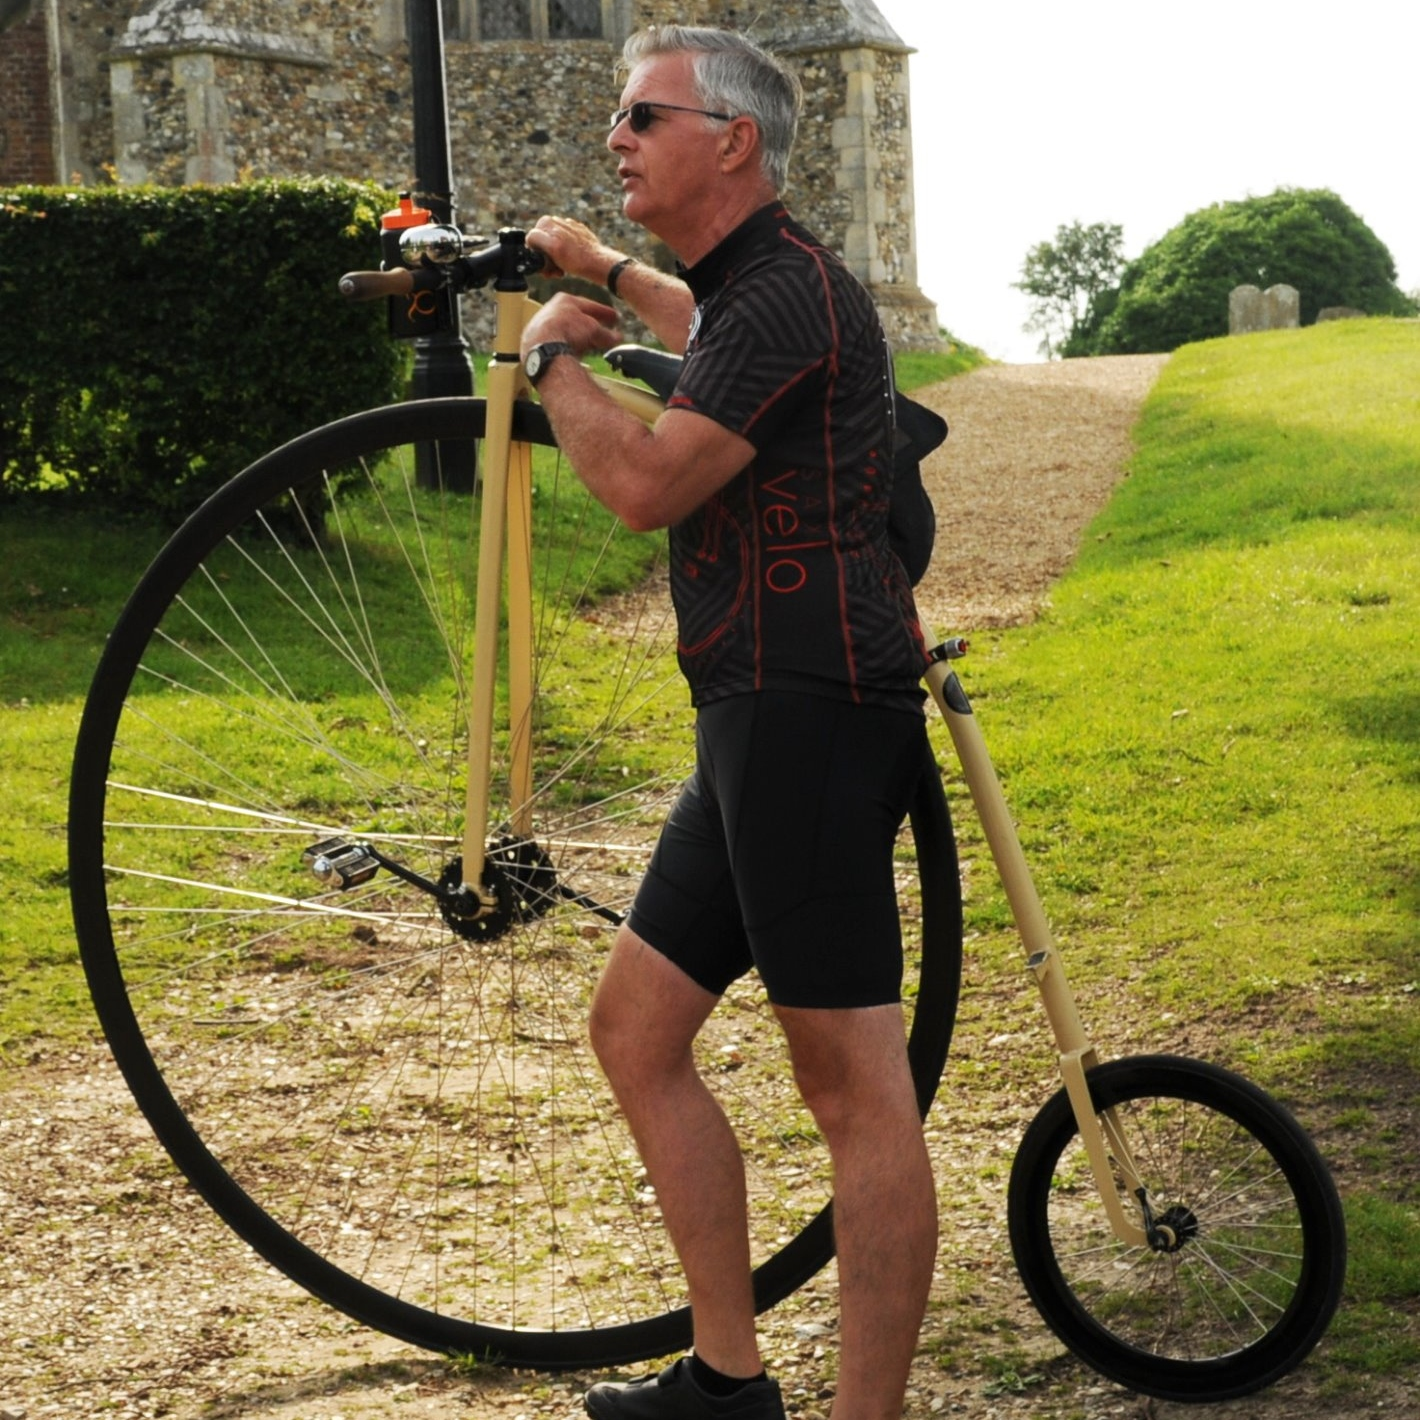 Peter and his penny farthing bike